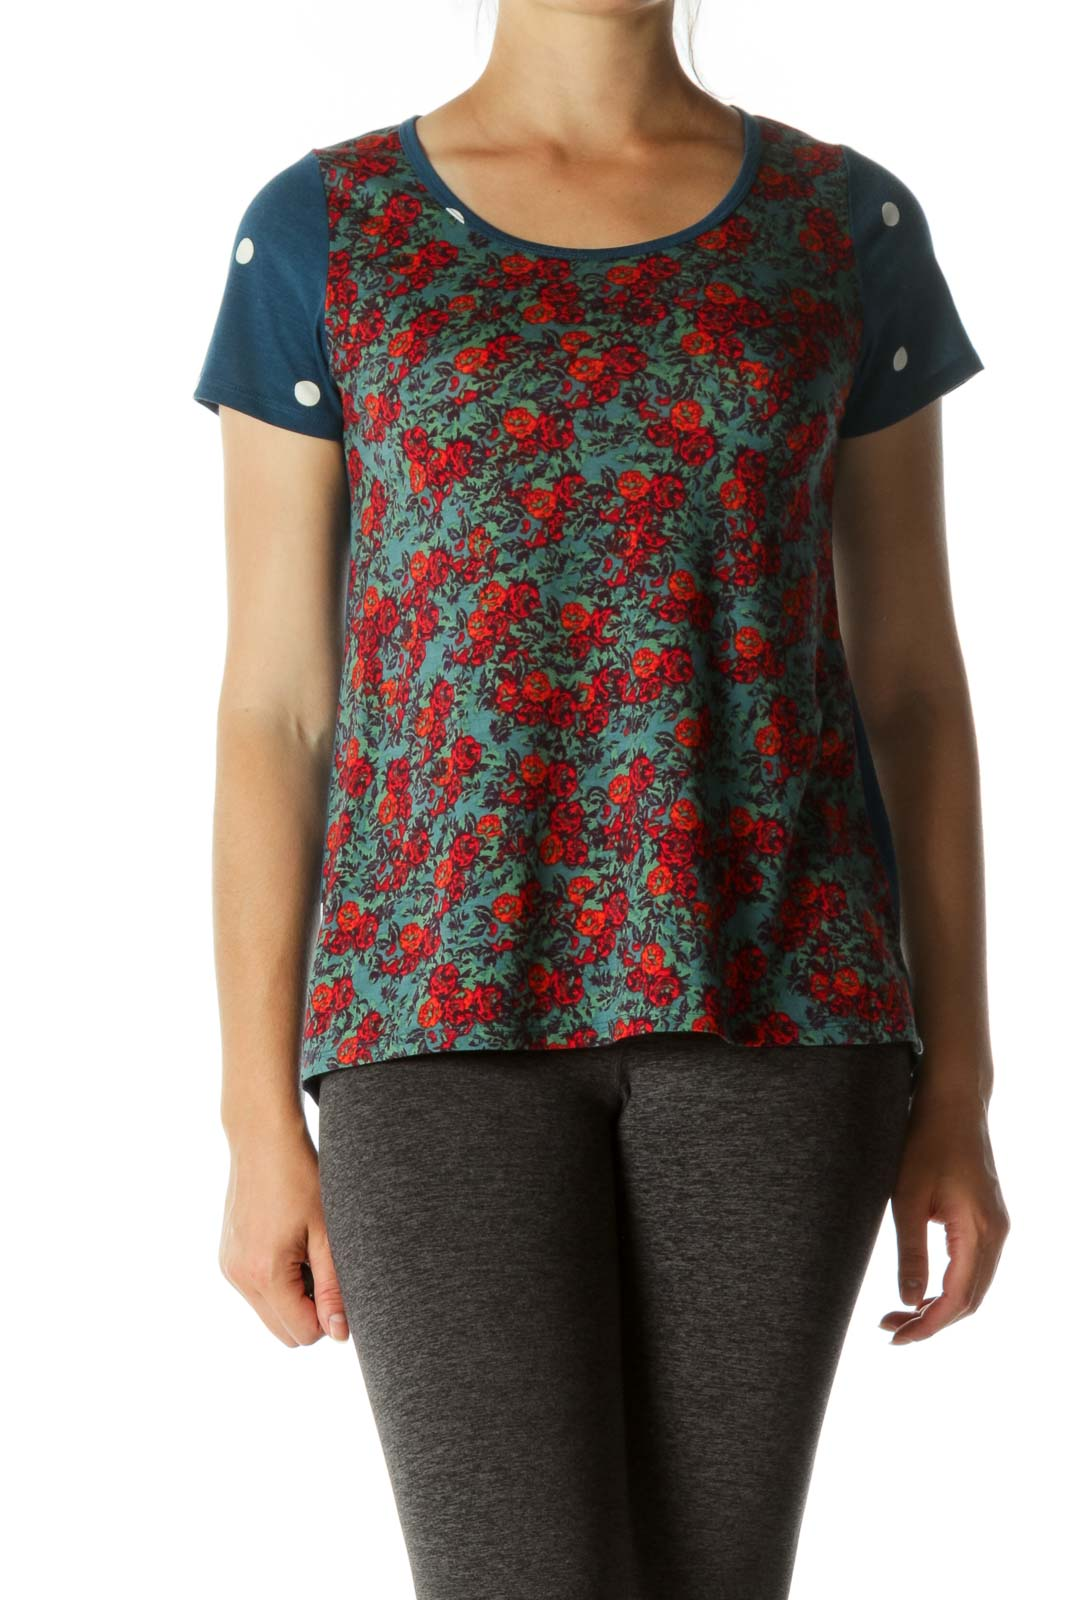 Red Floral & Blue Polka Dots Short Sleeve T-shirt